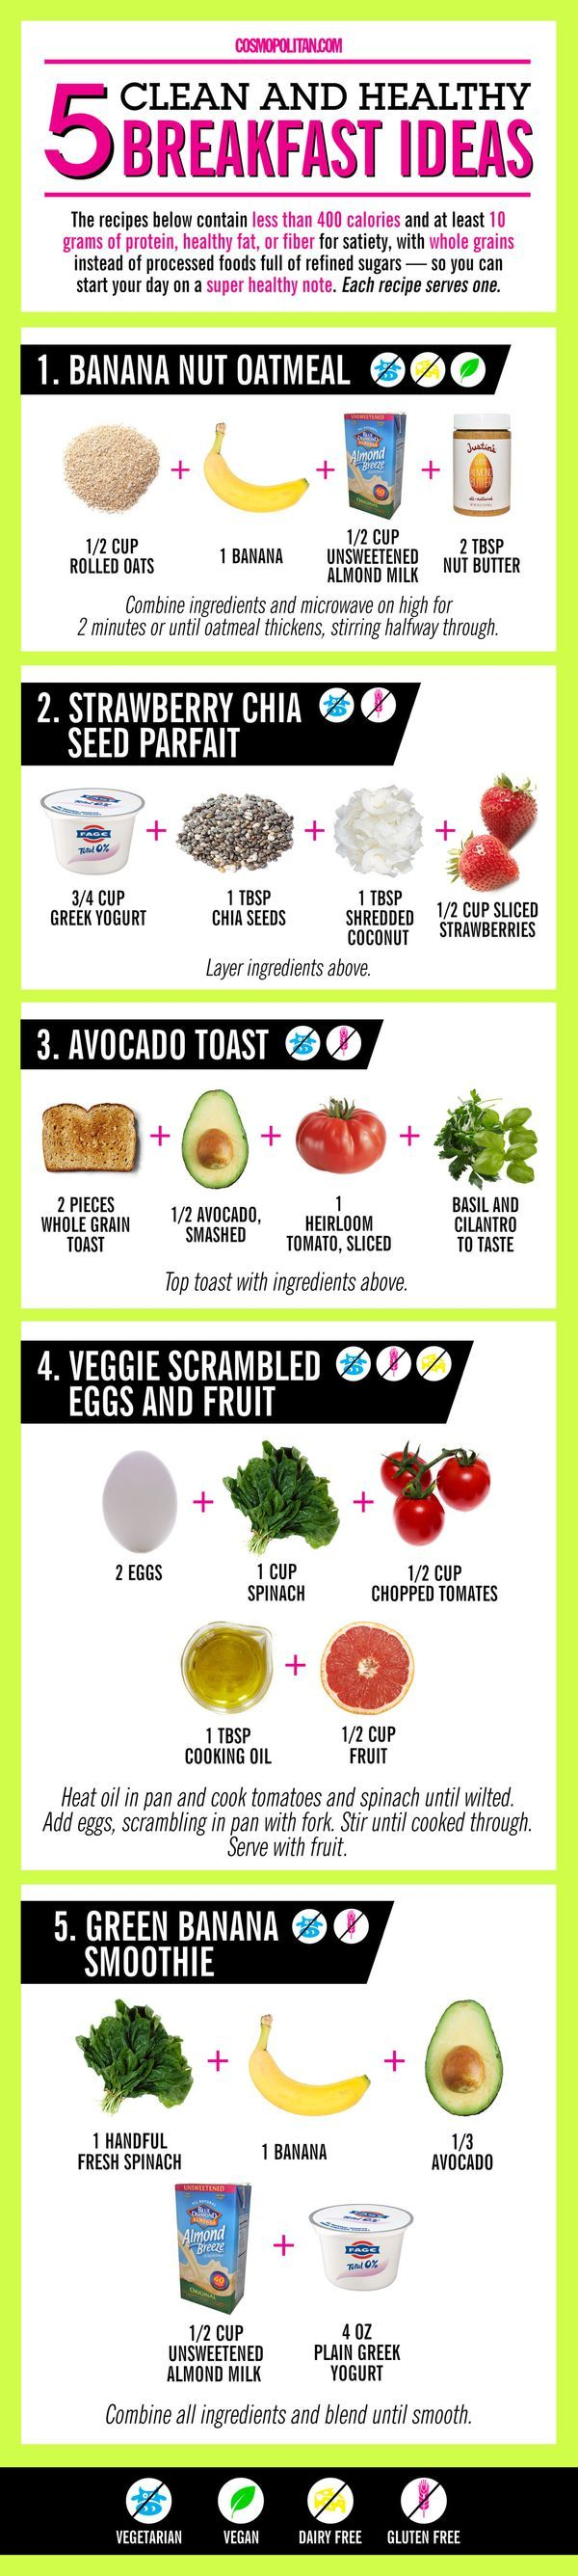 Cosmopolitan put together this incredible infographic of 4 and 5-ingredient healthy breakfasts of like banana nut oatmeal, a strawberry chia seed parfait, avocado toast, and veggie scrambled eggs! If these won't make you jump out of bed, nothing will!